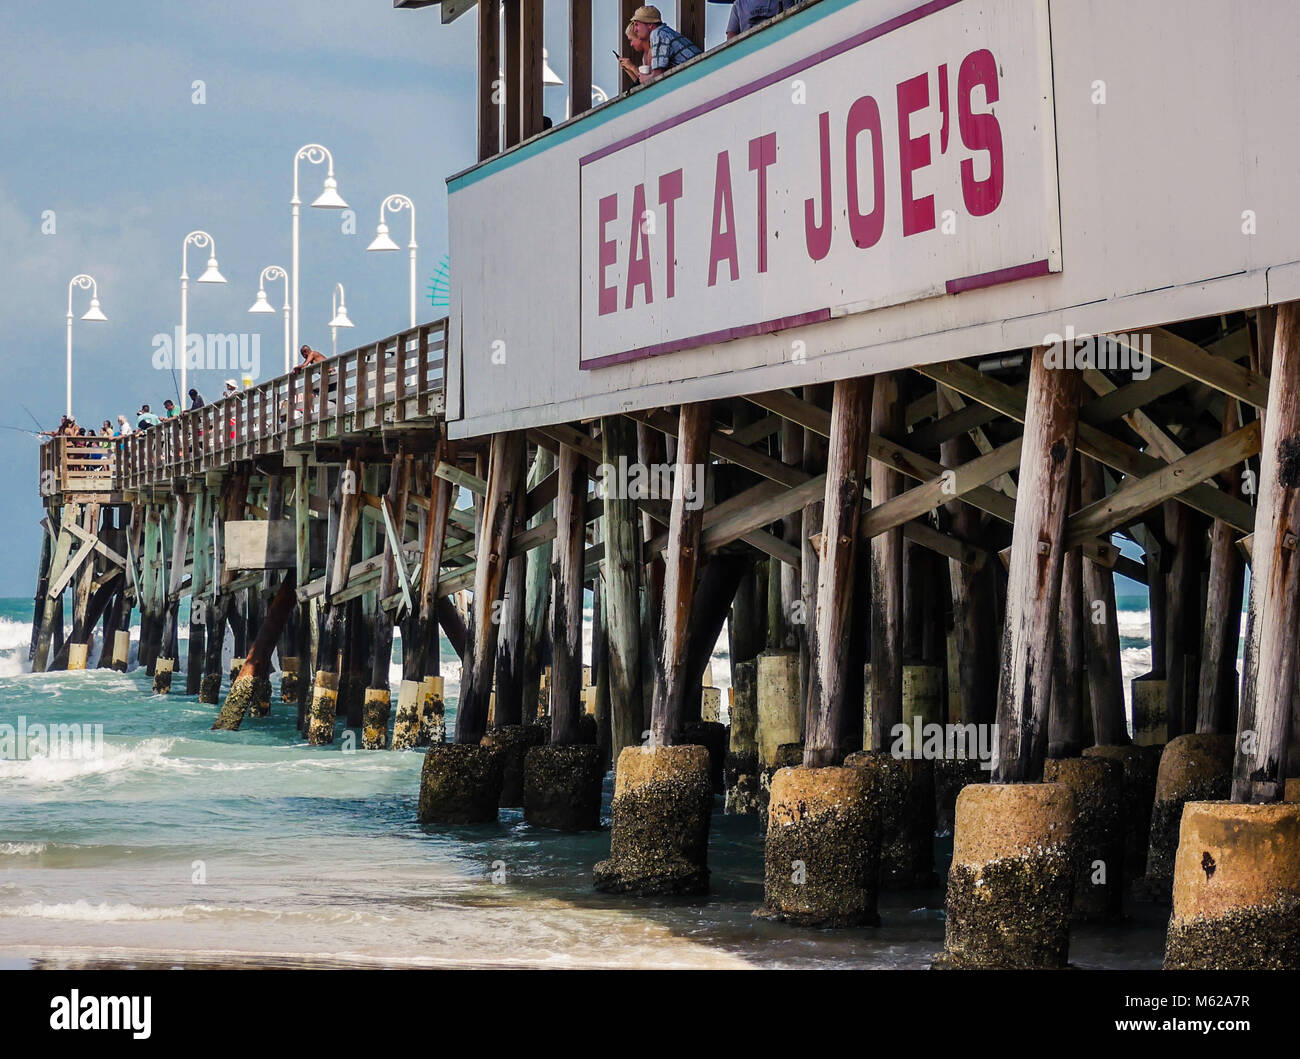 DAYTONA BEACH, FLORIDA - APRIL 15, 2017: Anglers fishing on the Daytona Beach Pier during Easter holiday weekend. - Stock Image